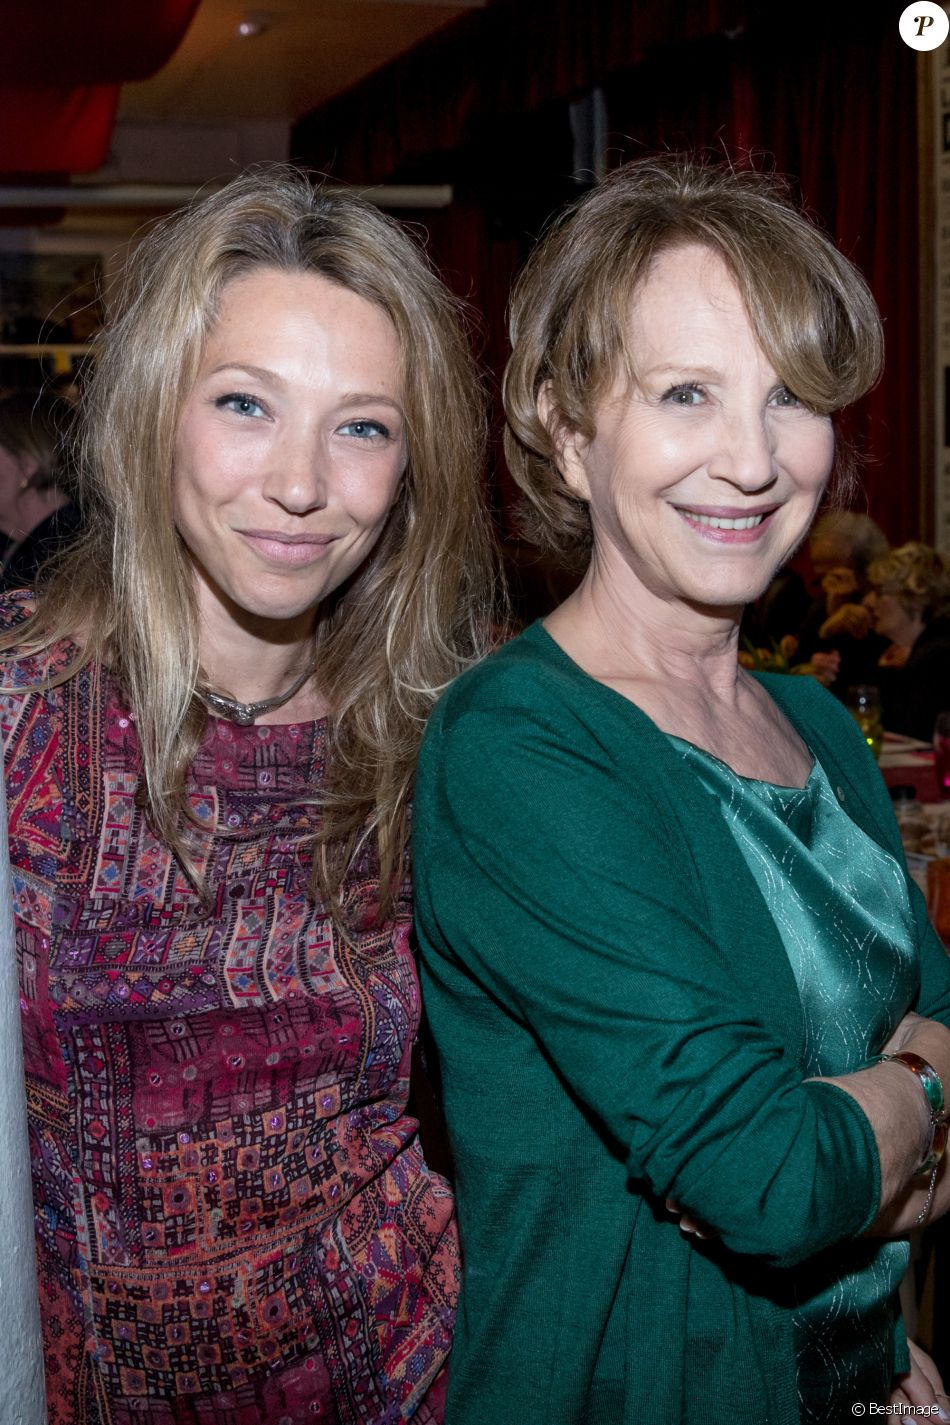 Semi-Exclusif - Laura Smet et sa mère Nathalie Baye - Soirée en l'honneur de Nathalie Baye, organisée par Louis Michel Colla, à La Chope des Puces, restaurant mythique de Marcel Campion à Saint-Ouen. Le 30 avril 2018 © Cyril Moreau / Bestimage